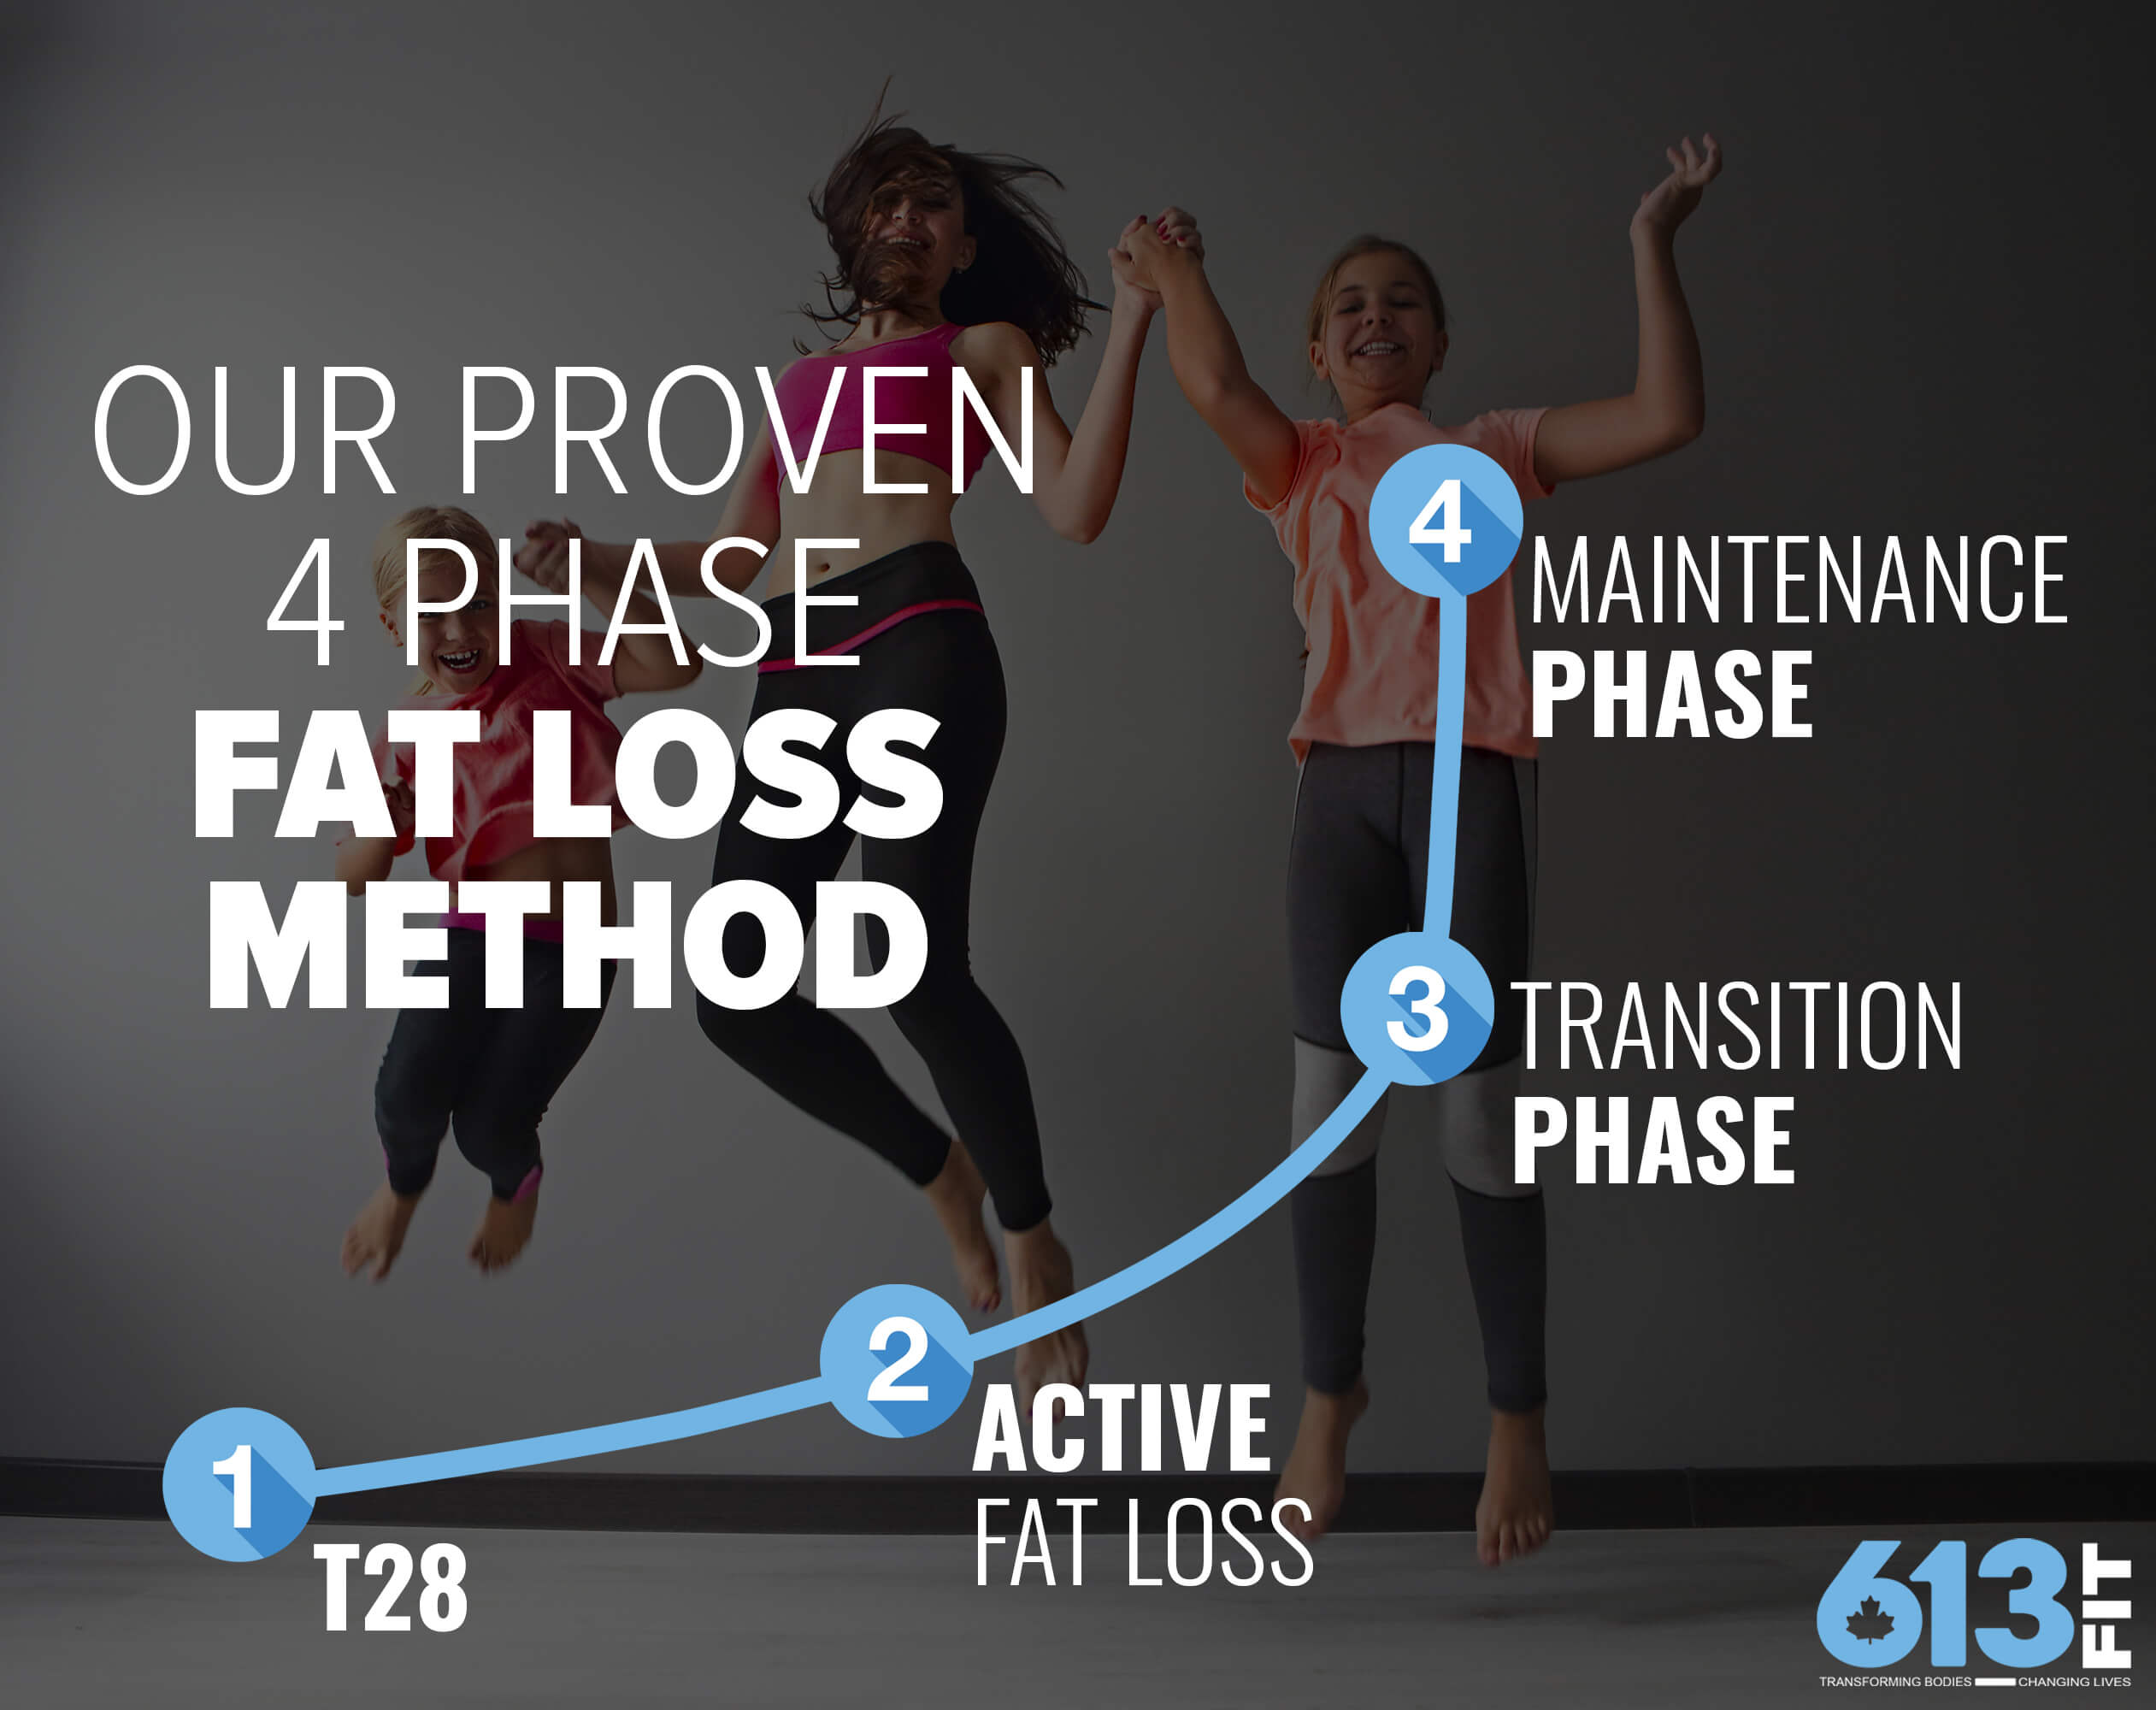 4 phase fat loss method